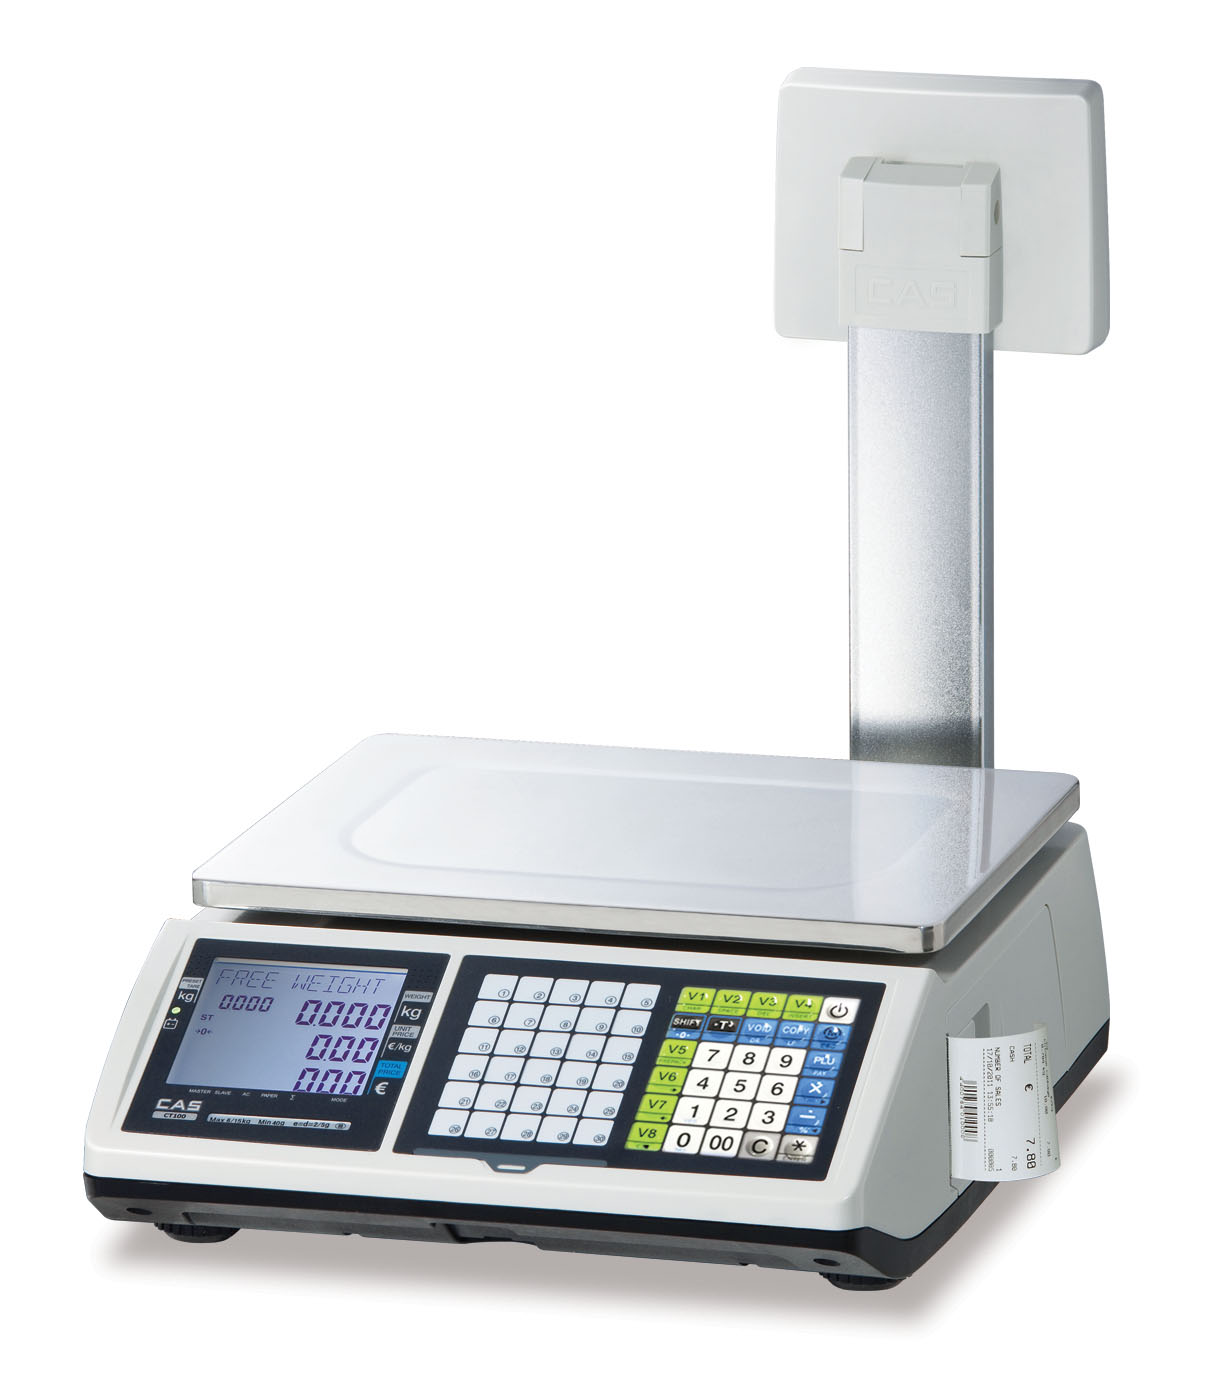 CAS CT100 Ticket Printing Scale with Pole